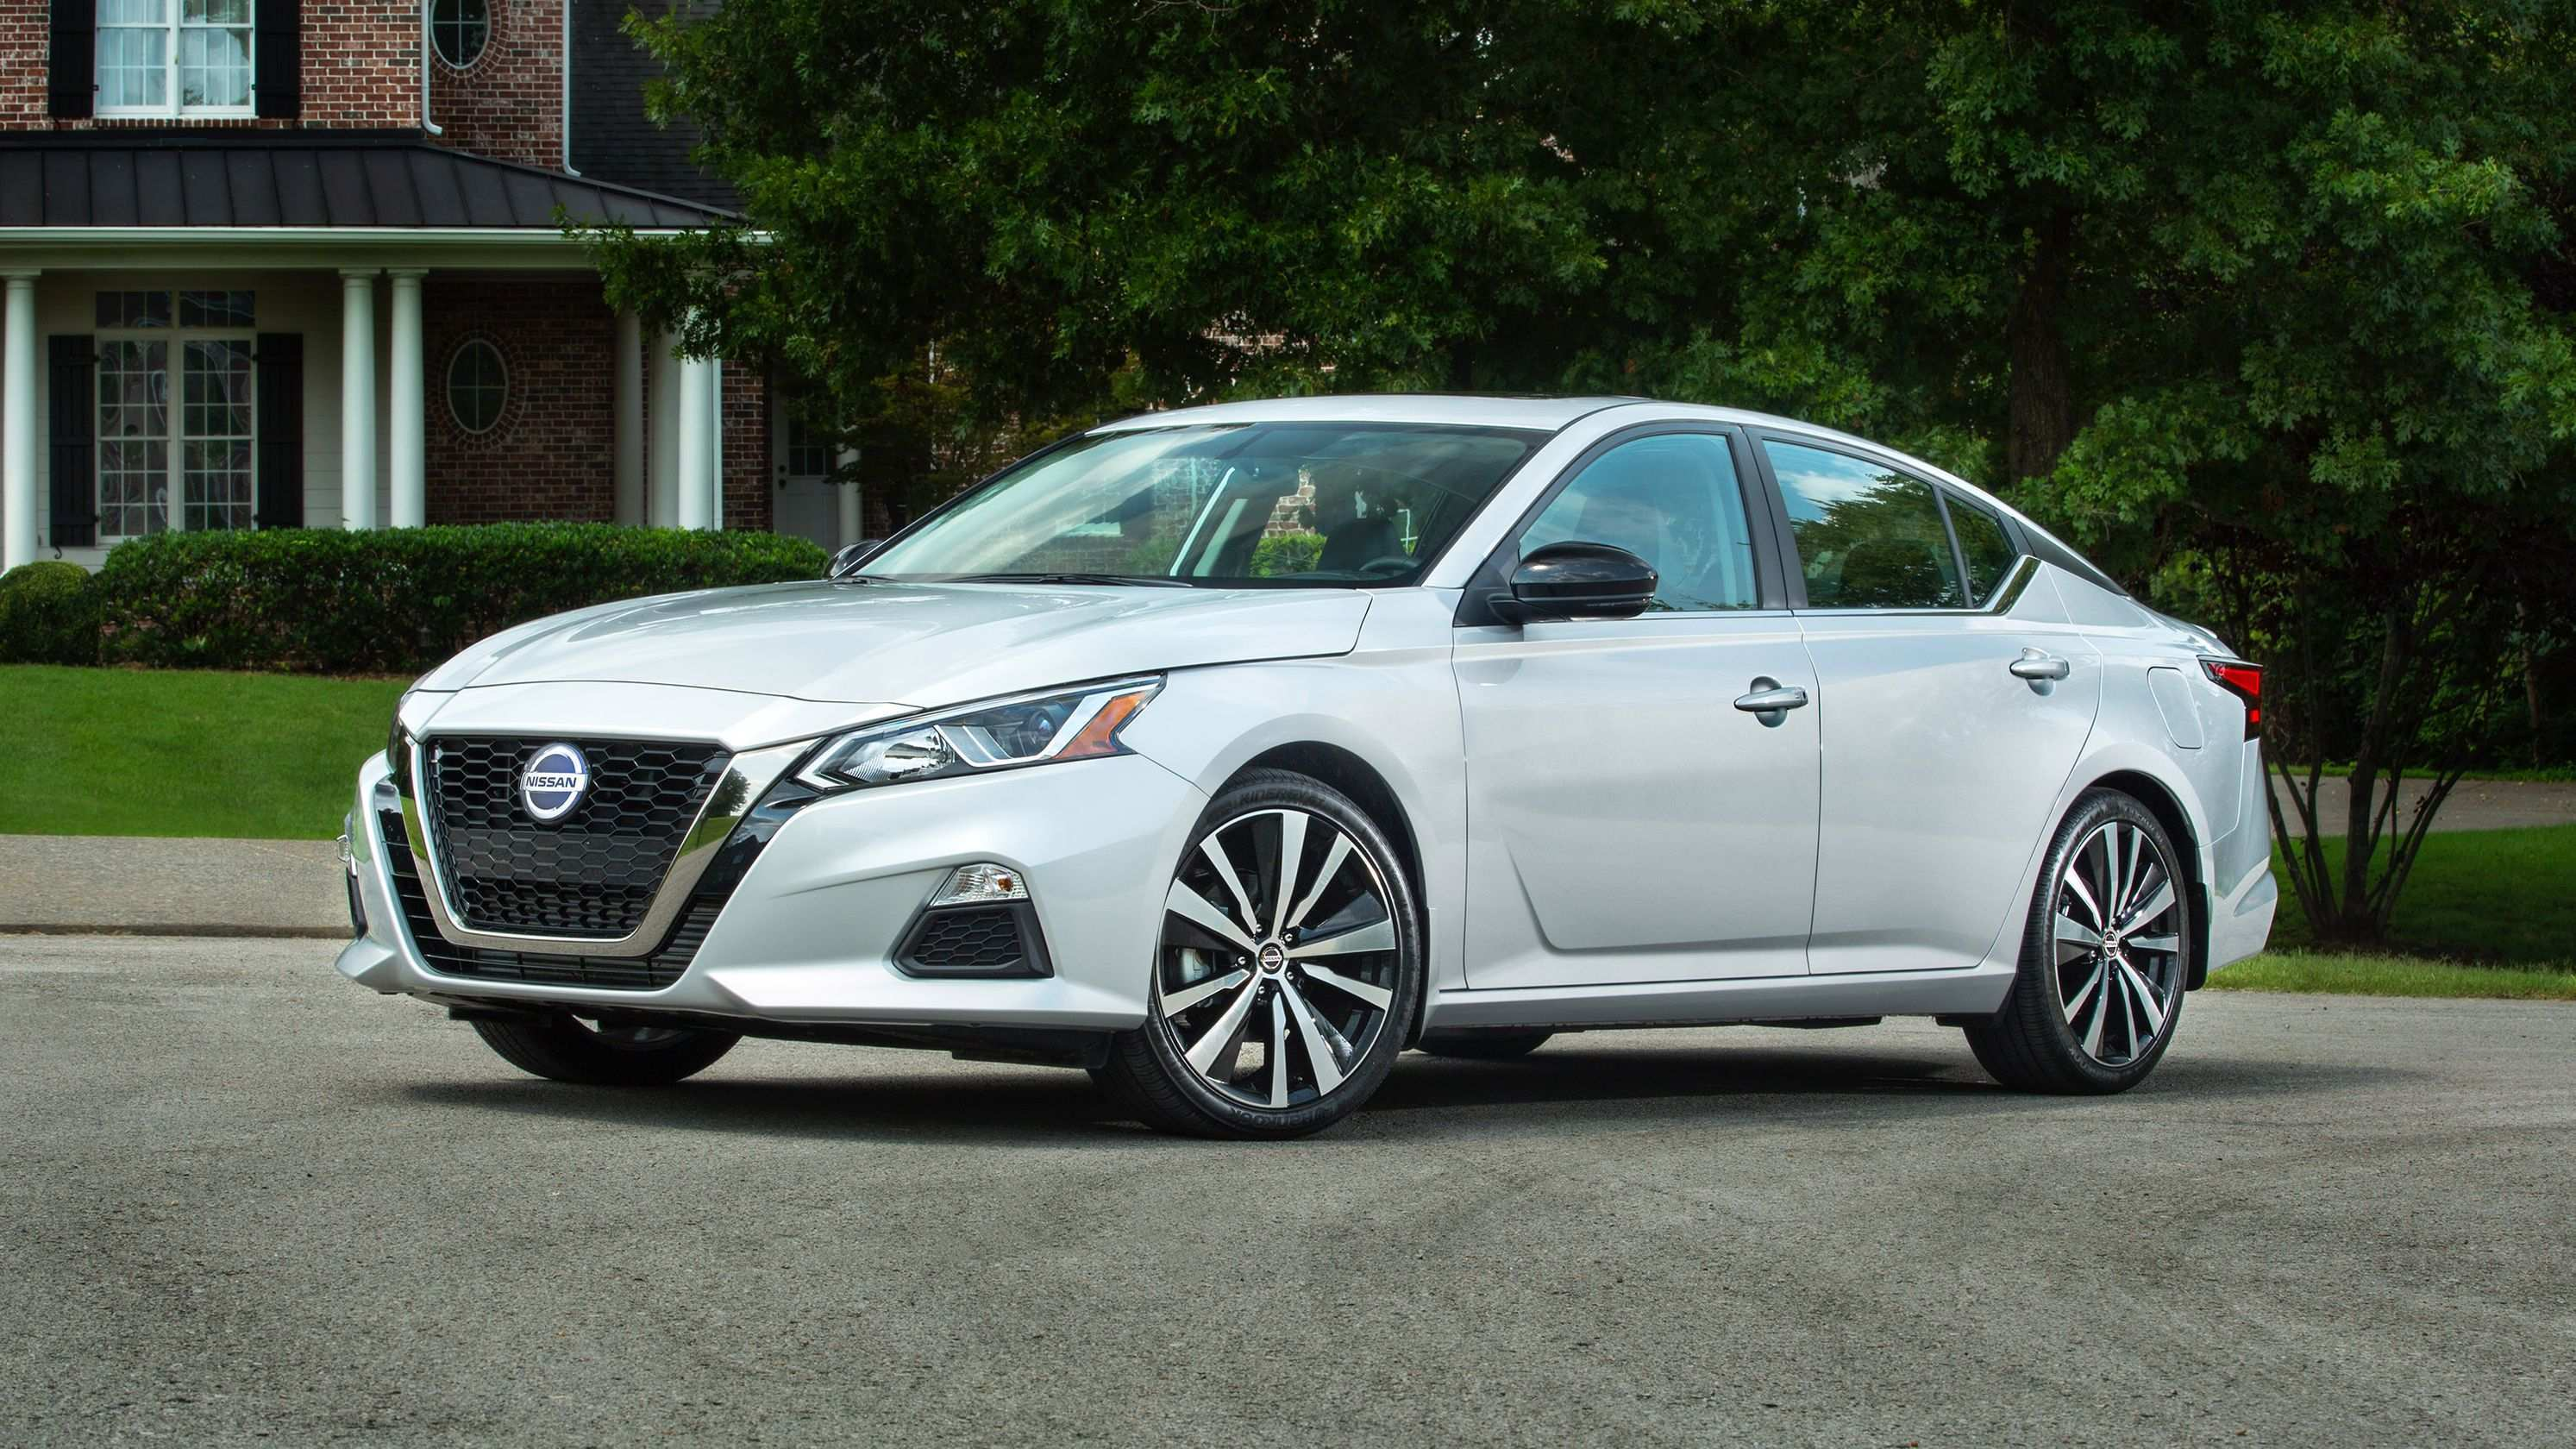 60 New 2019 Nissan Altima News Redesign for 2019 Nissan Altima News